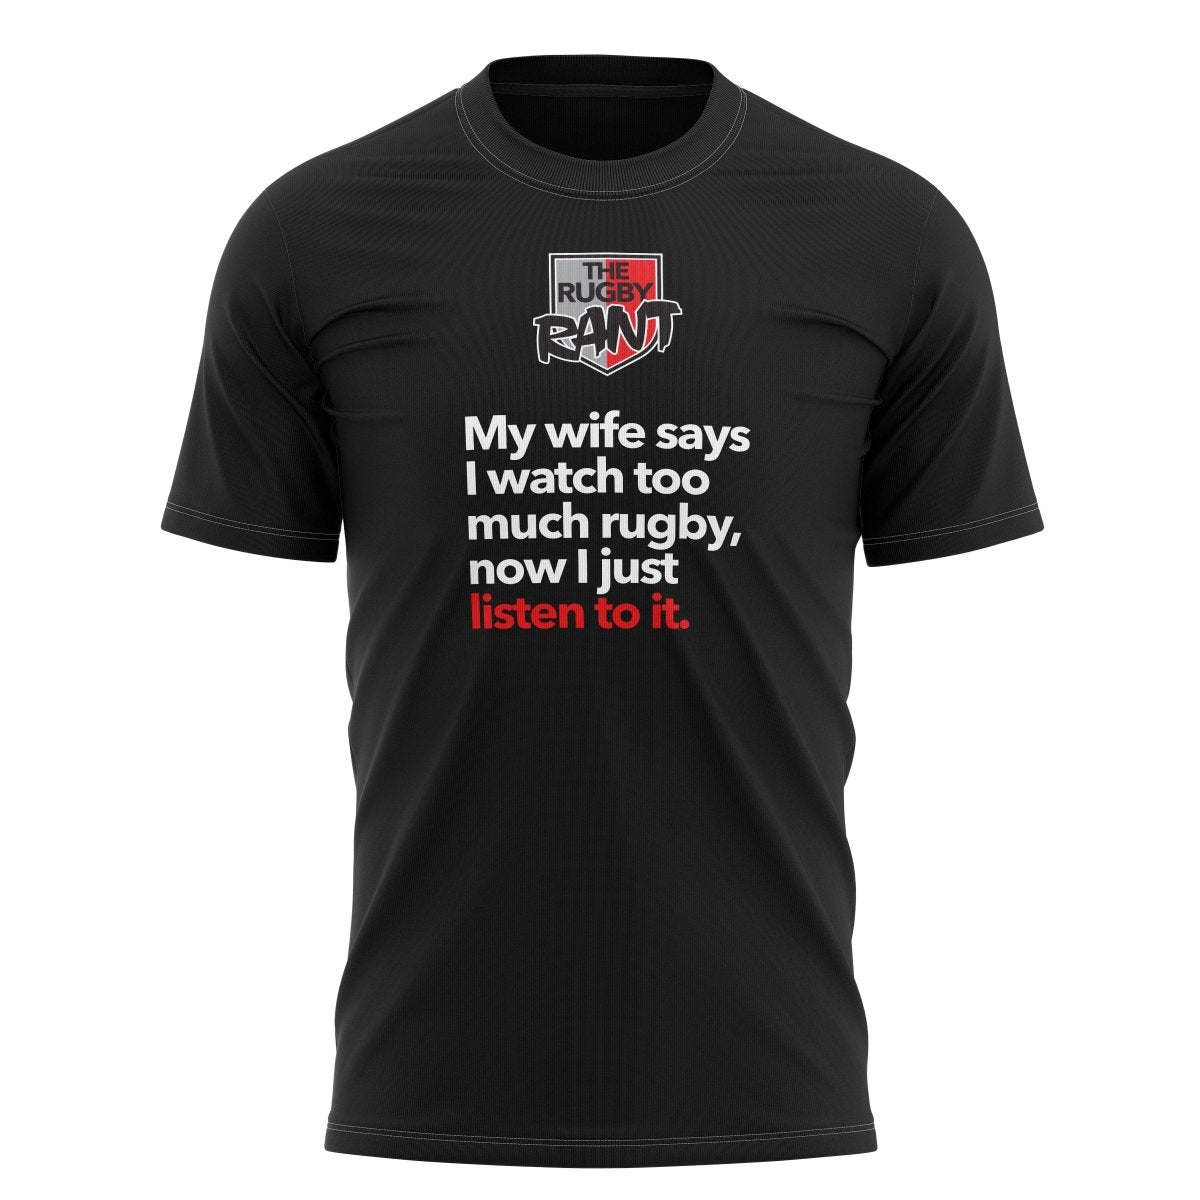 "The Rugby Rant ""My Wife"" Tee - Unisex - www.therugbyshop.com"